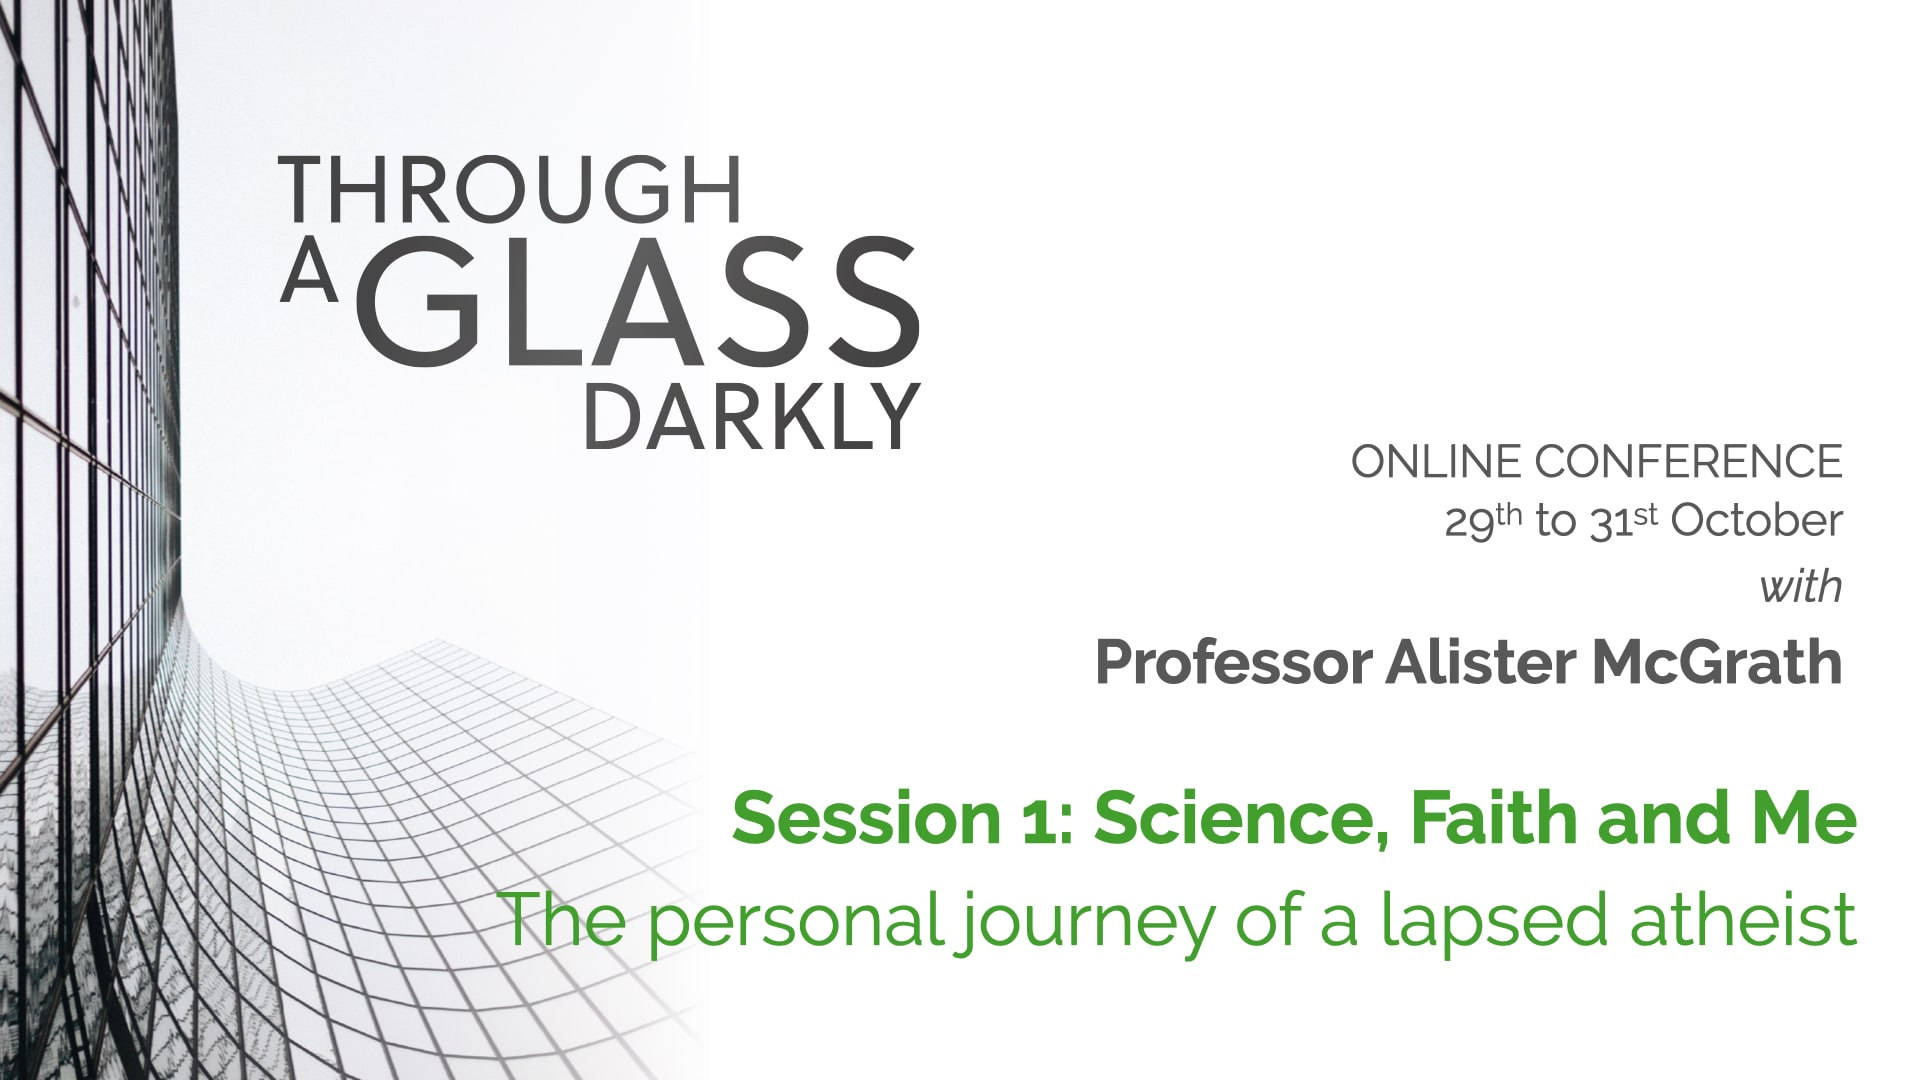 Through a Glass Darkly (Lecture 1)